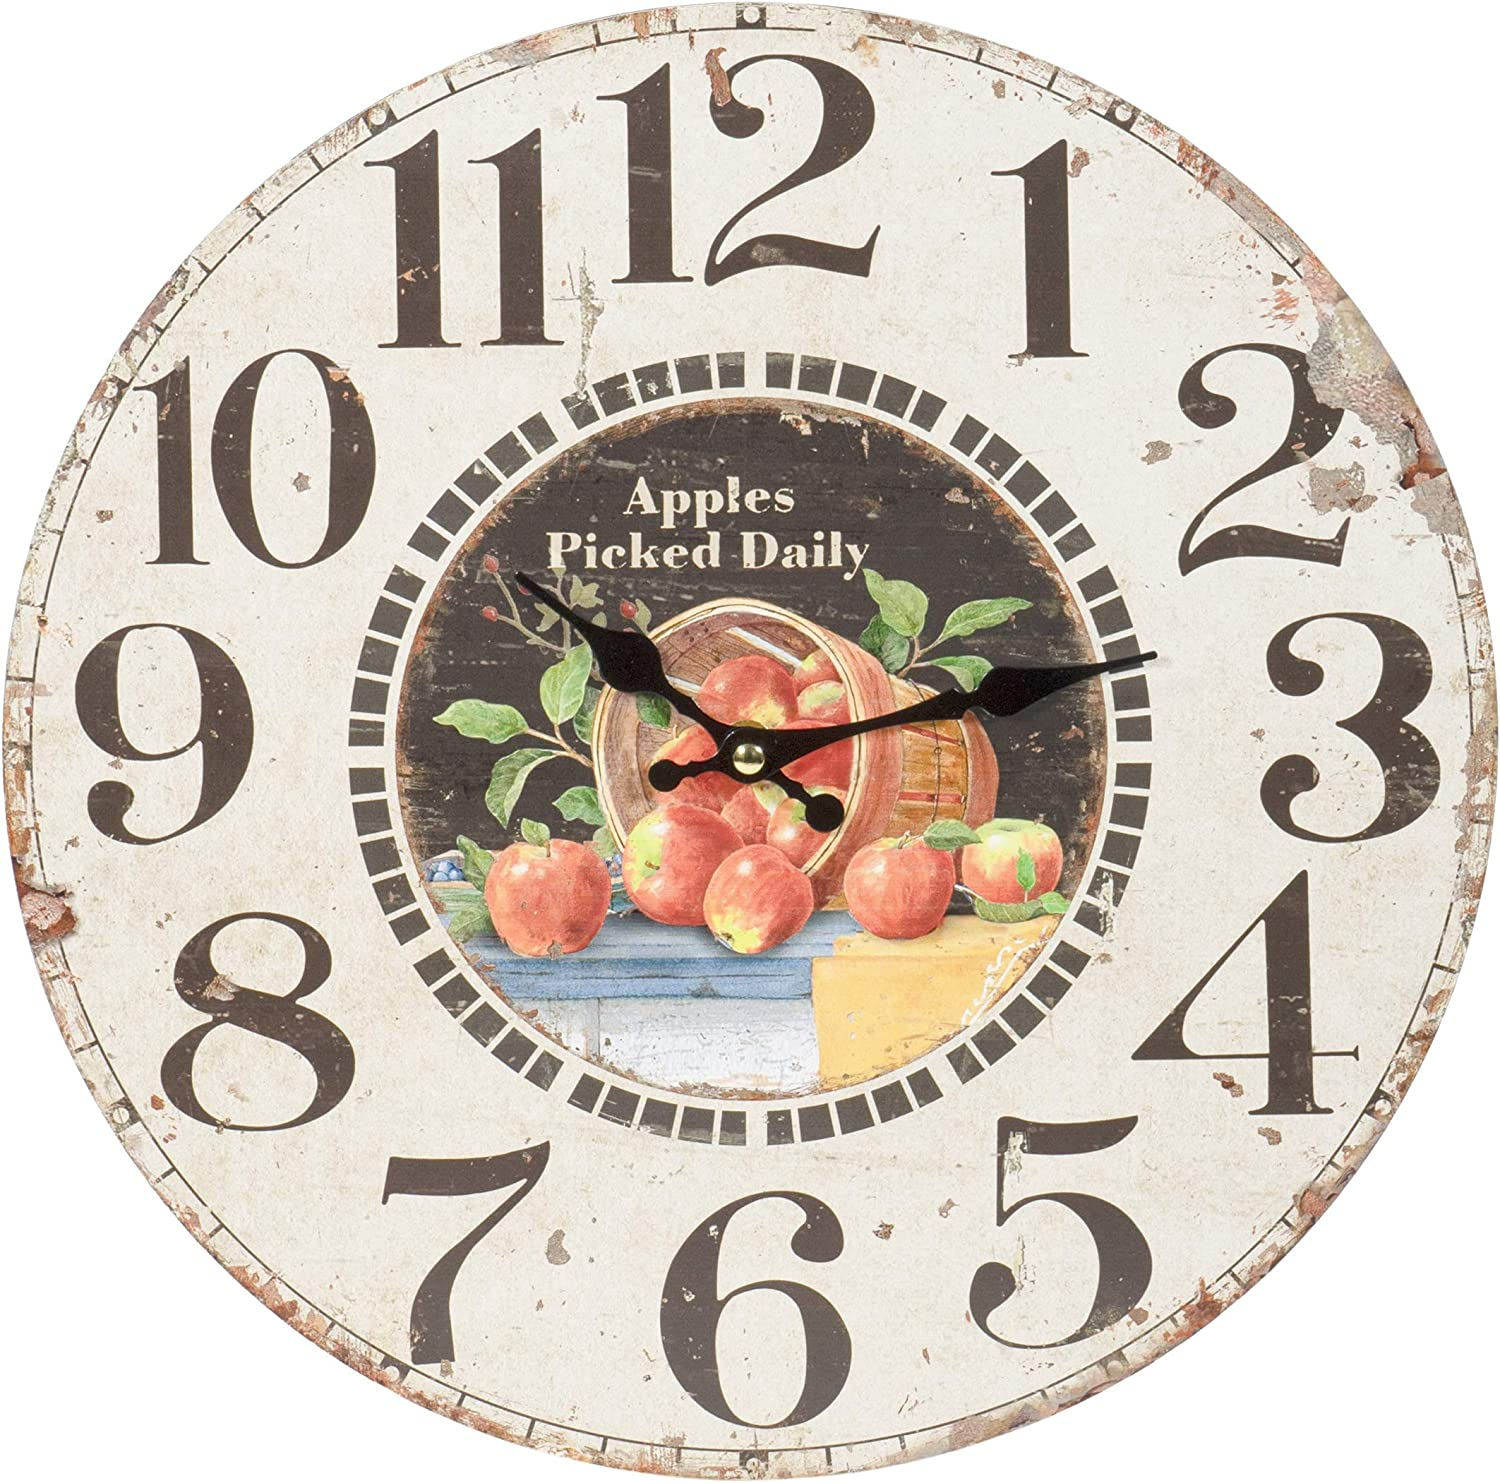 Apples Picked Daily — Round Wood Style Wall Clock - Farmhouse Rustic Home Decor - 13 Inches Diameter